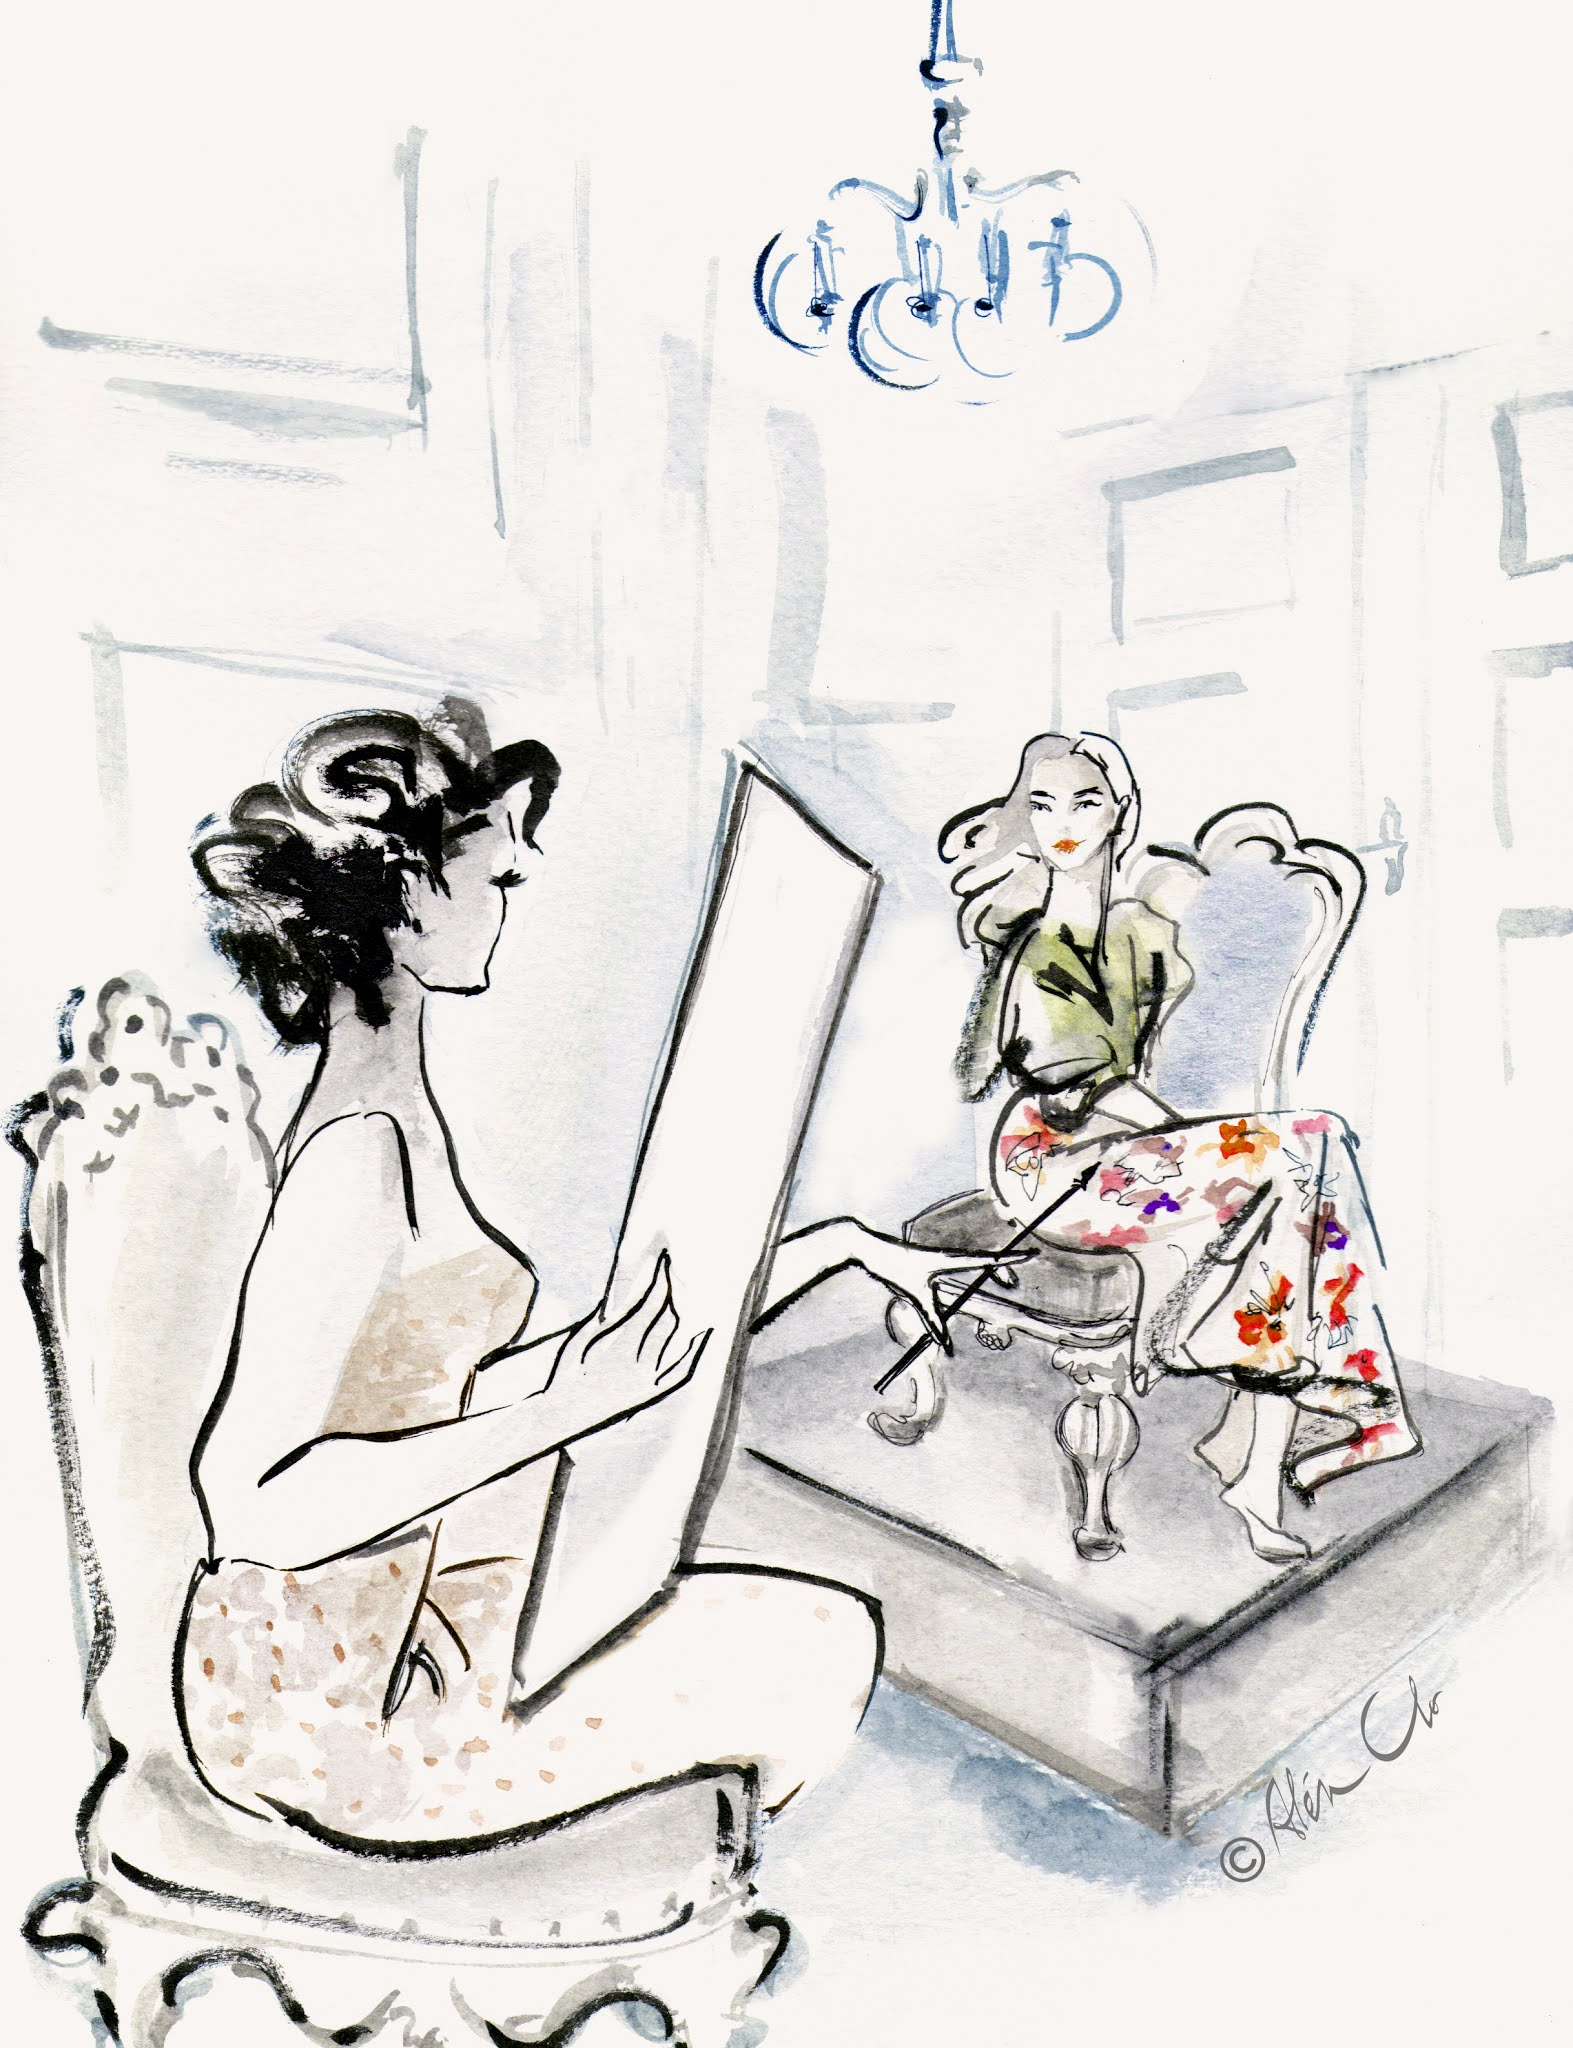 Female-artist-at-work-with-muse